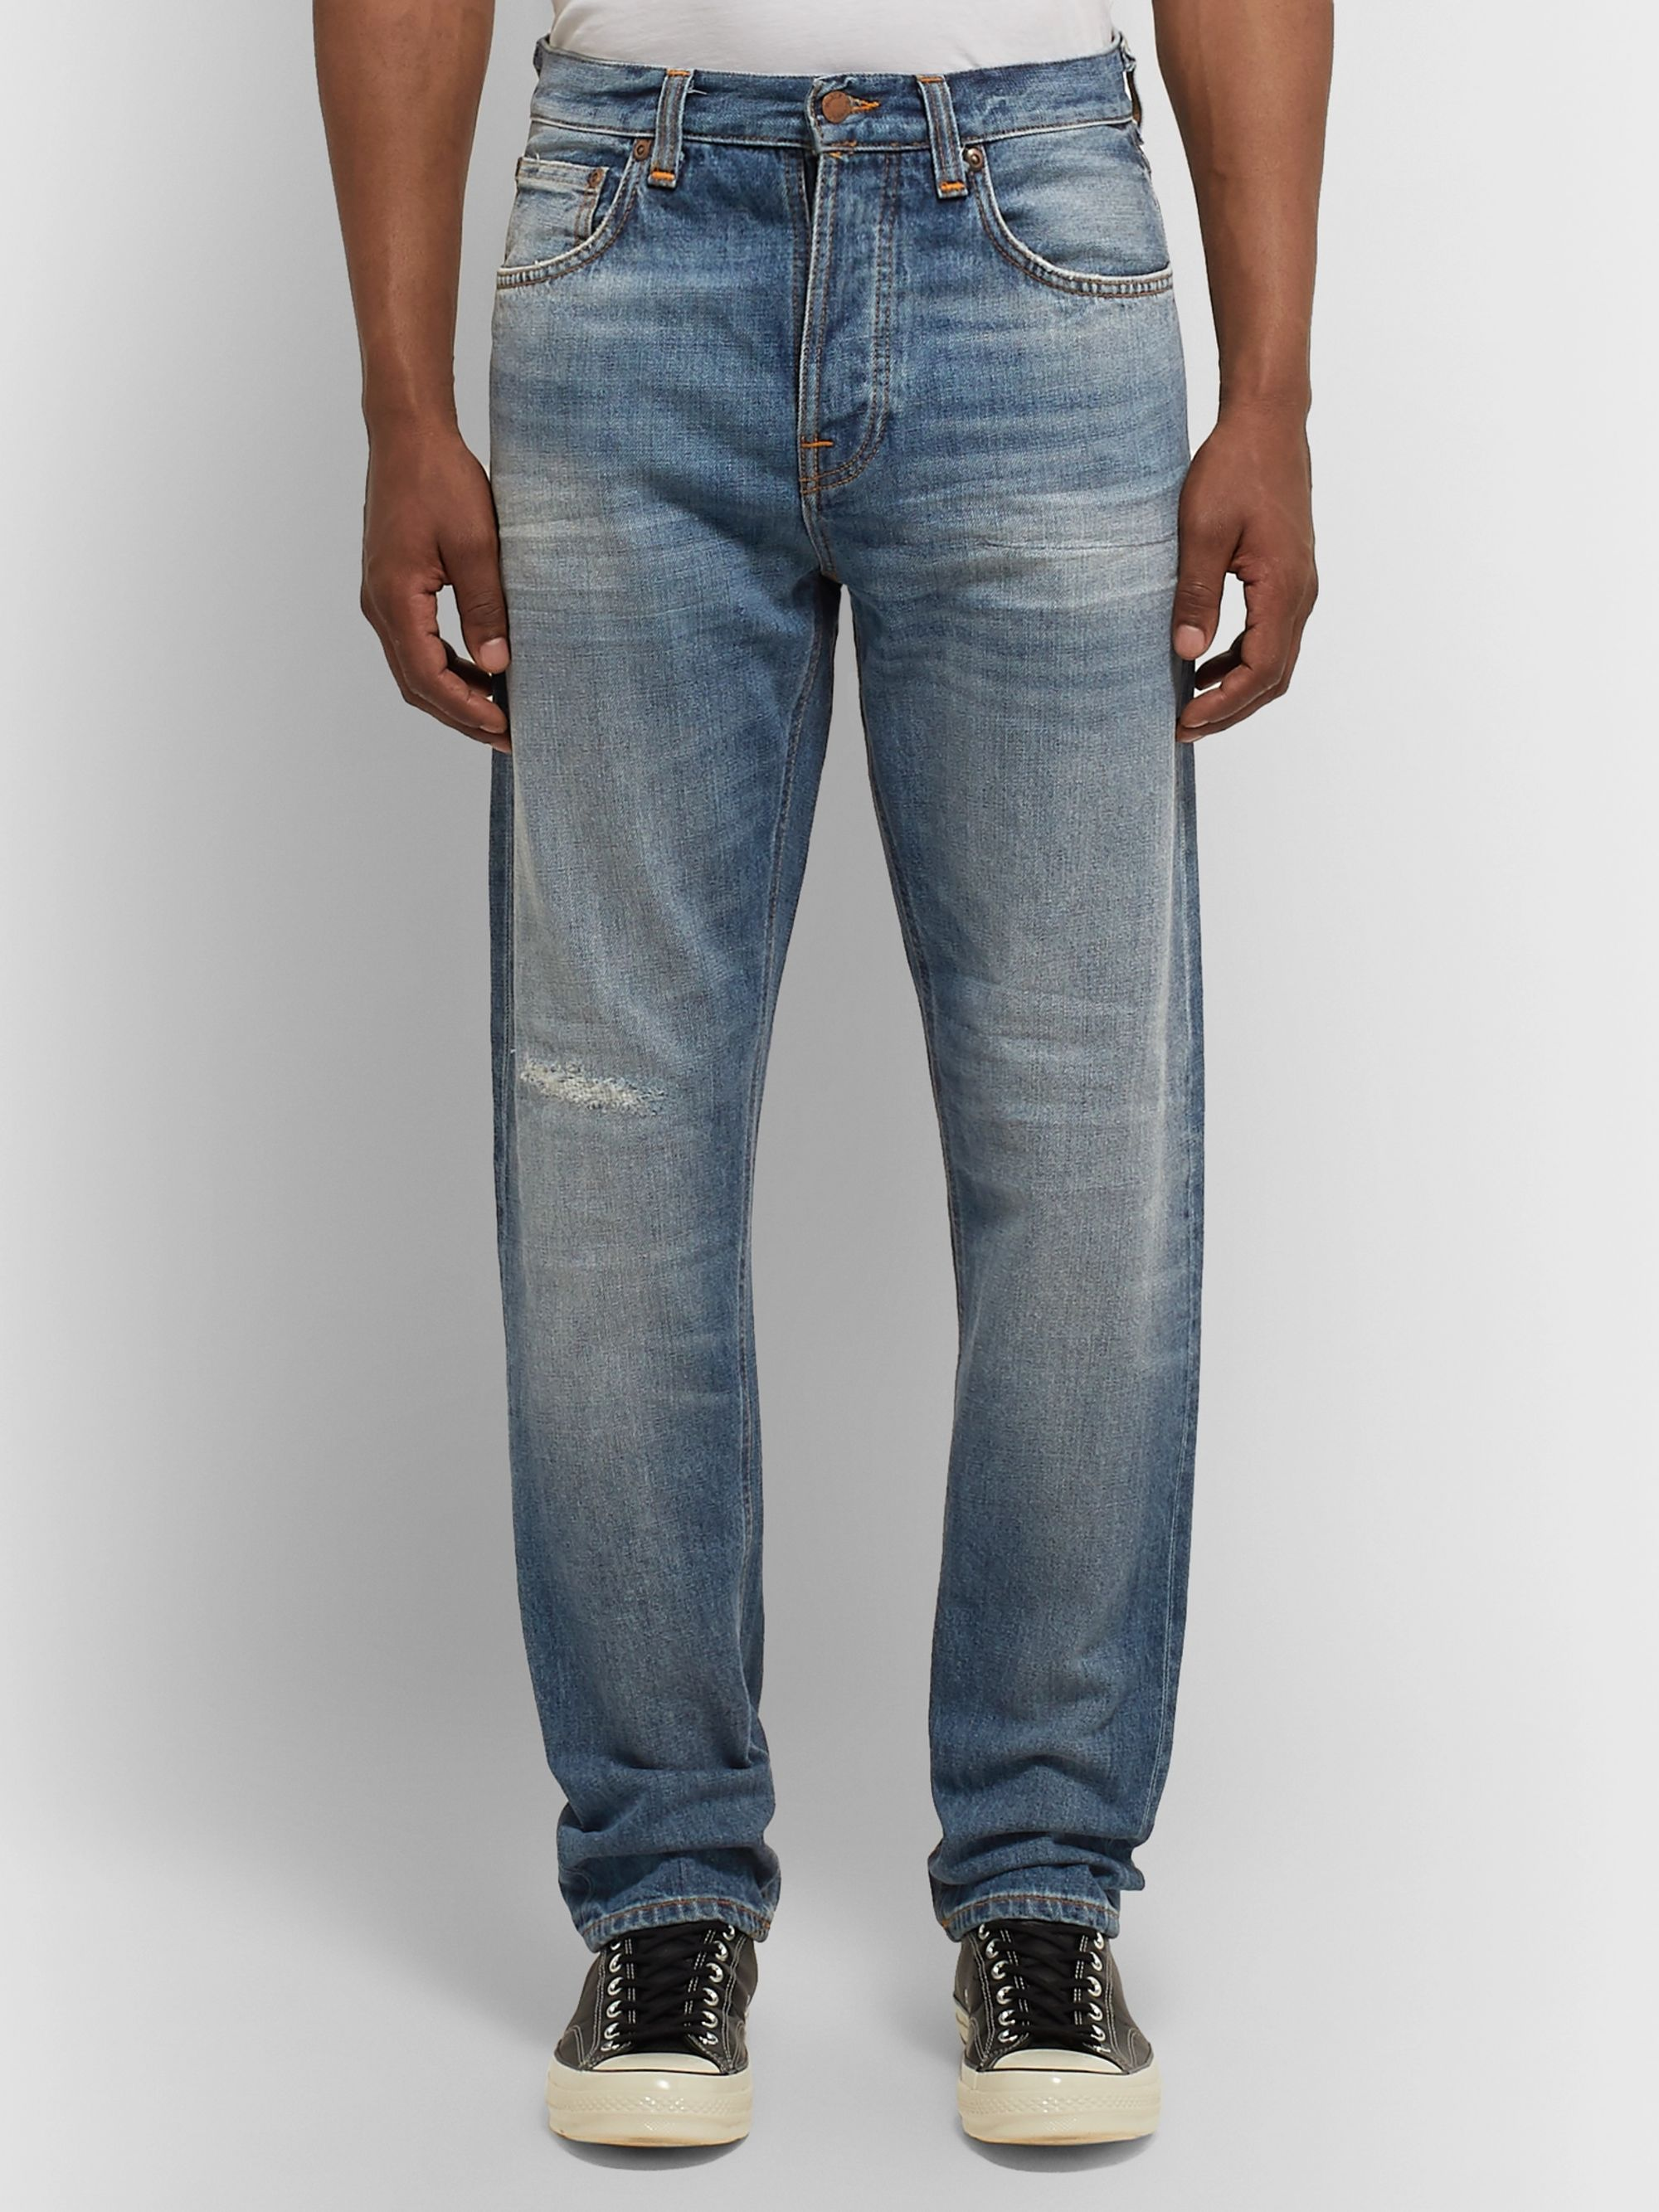 Nudie Jeans Steady Eddie II Tapered Distressed Organic Denim Jeans